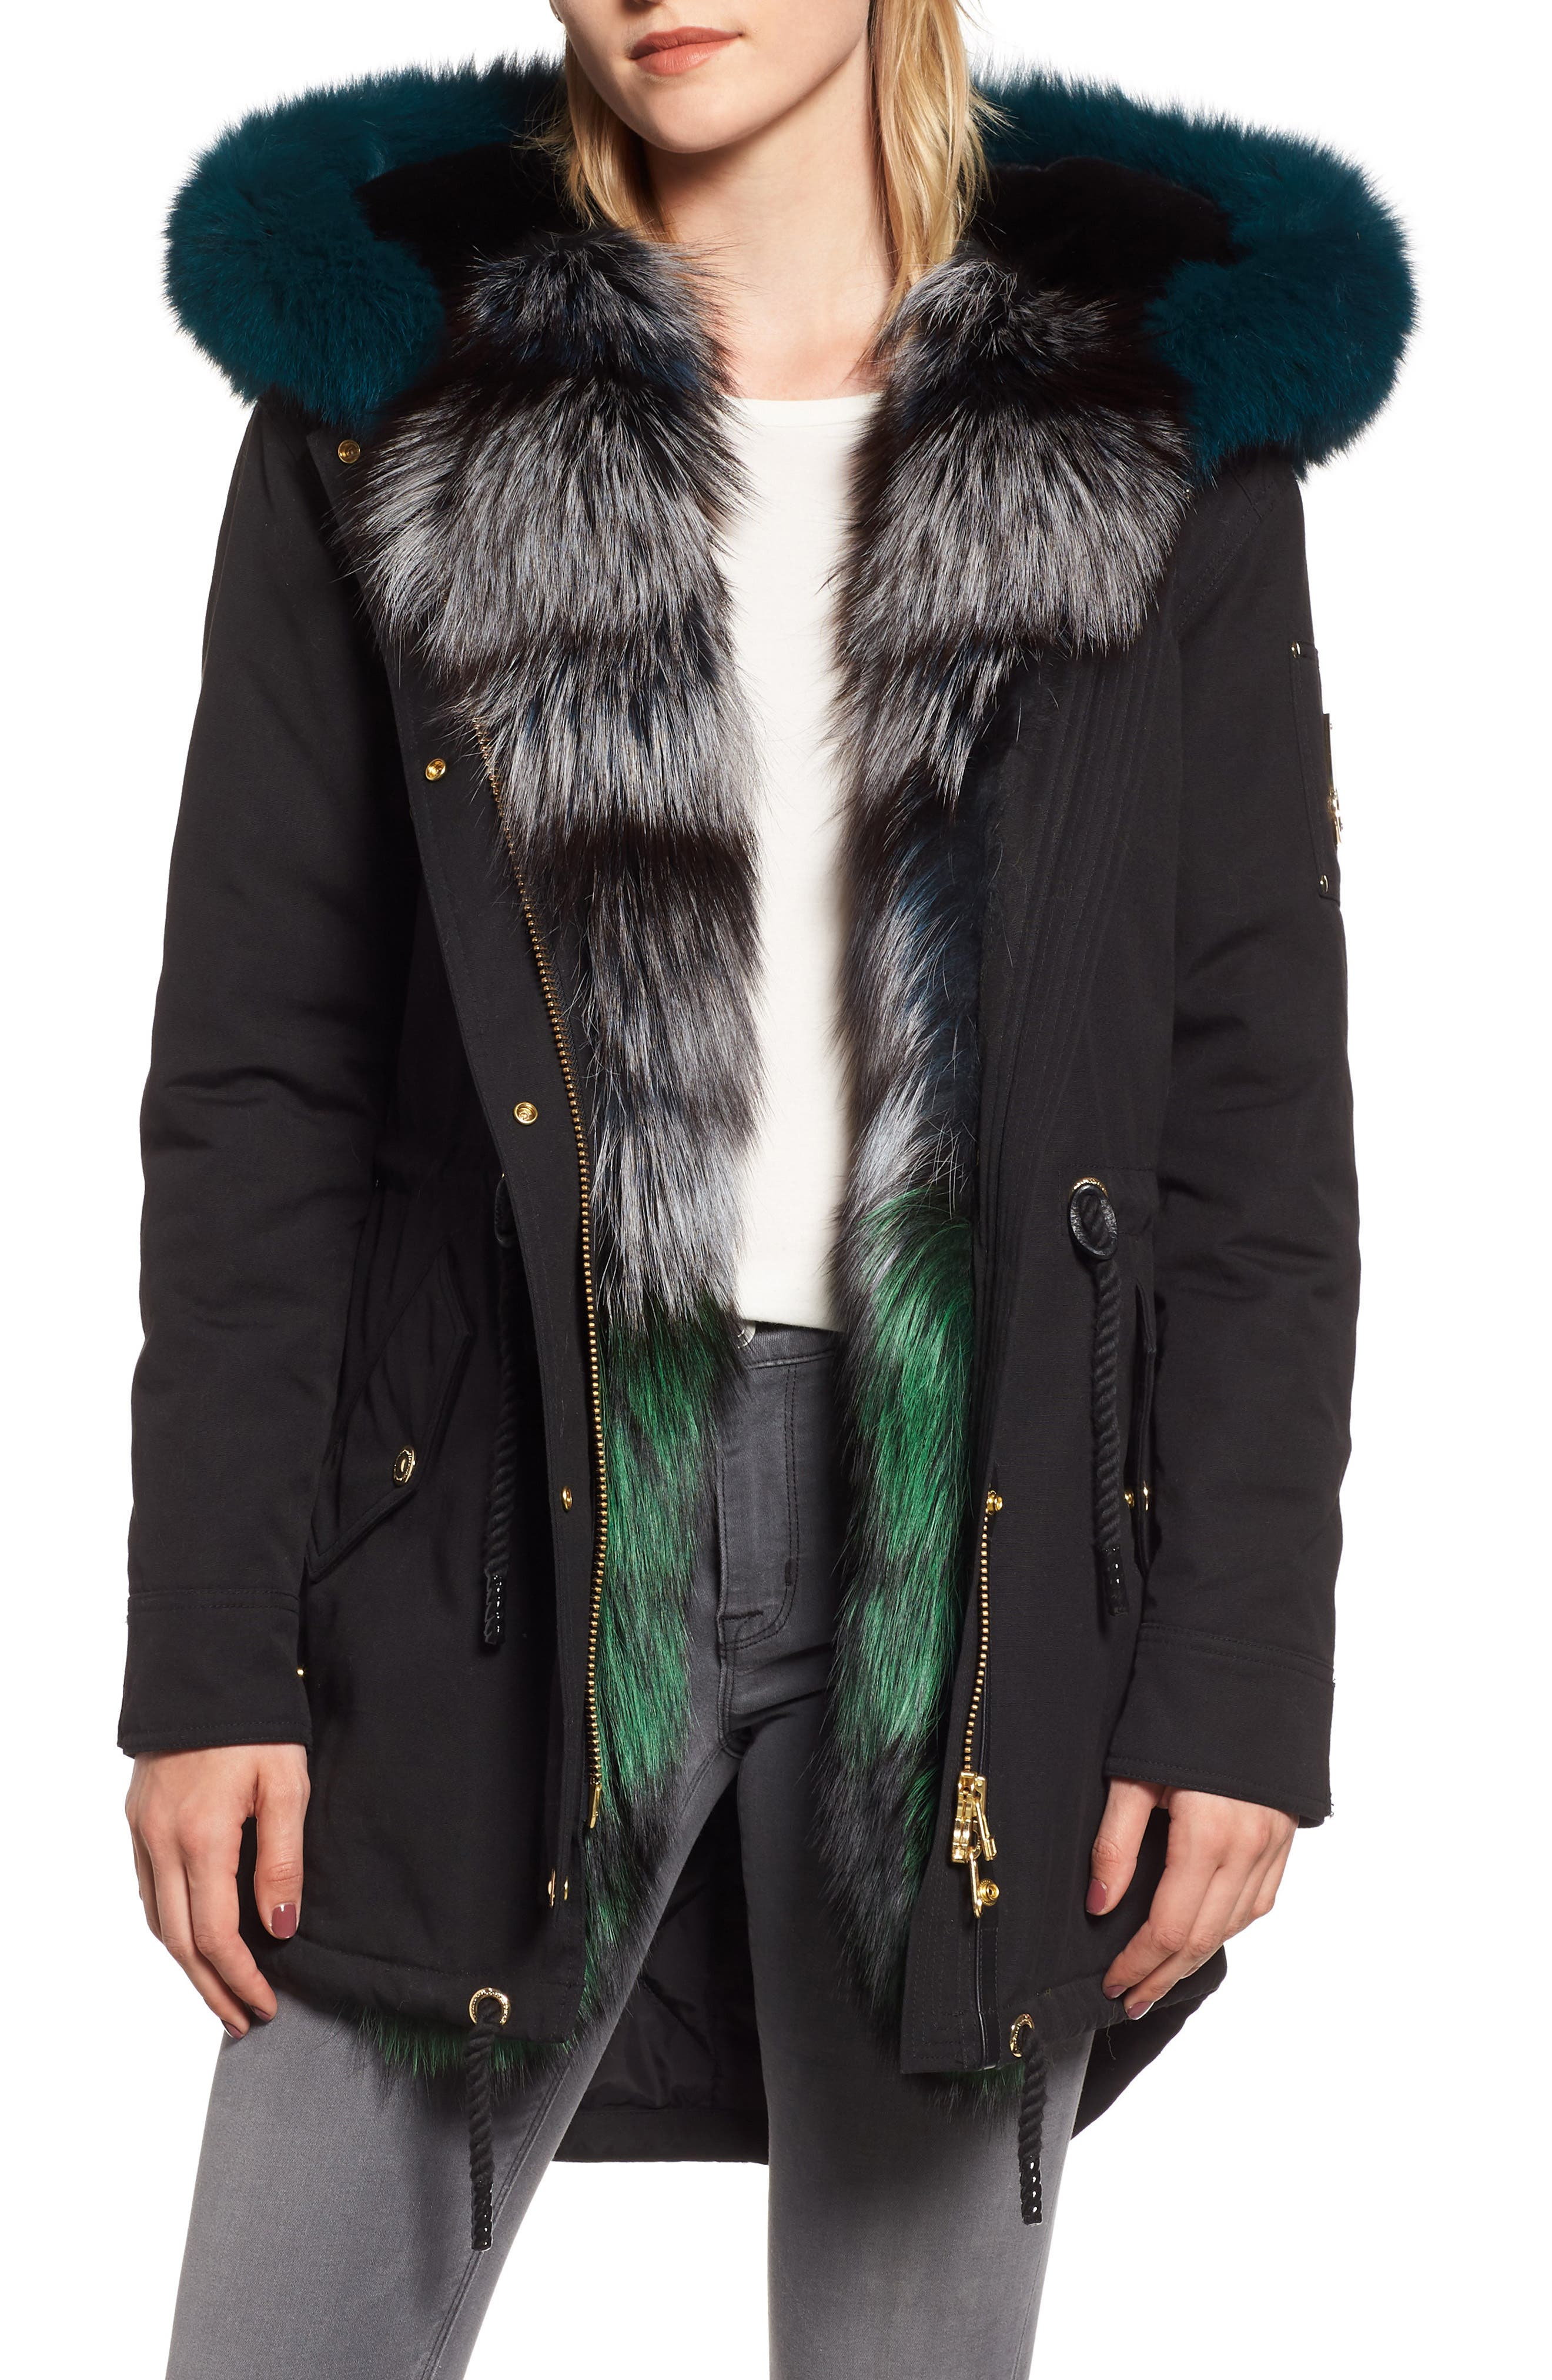 Foxy Stellar Parka with Genuine Rabbit Fur & Genuine Fox Fur,                             Main thumbnail 1, color,                             BLACK/ TEAL/ SKY BLUE/ GREEN